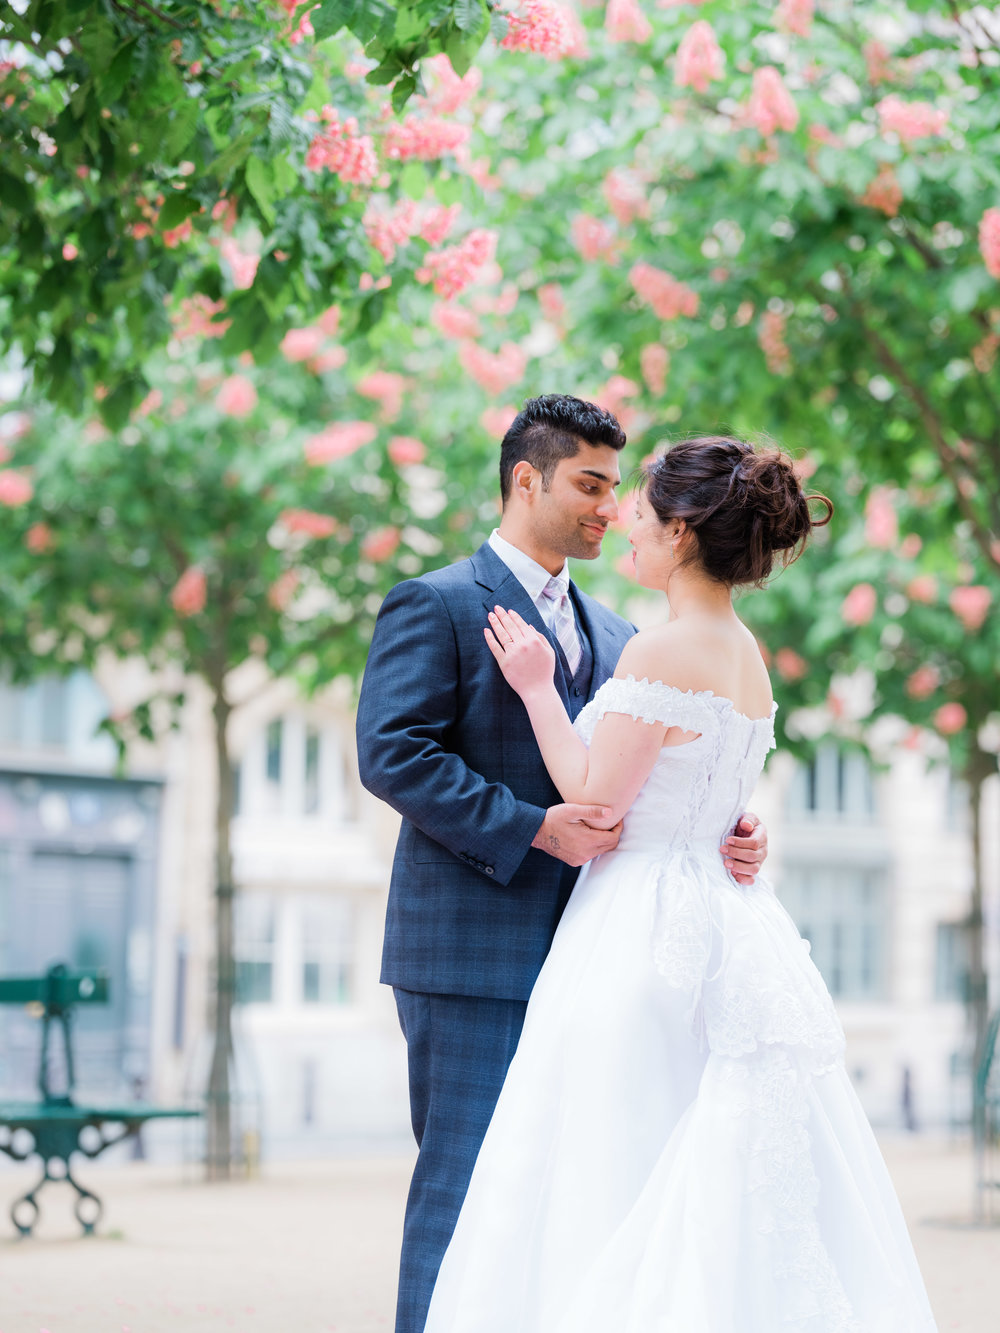 romantic wedding photo session at the eiffel tower in paris france